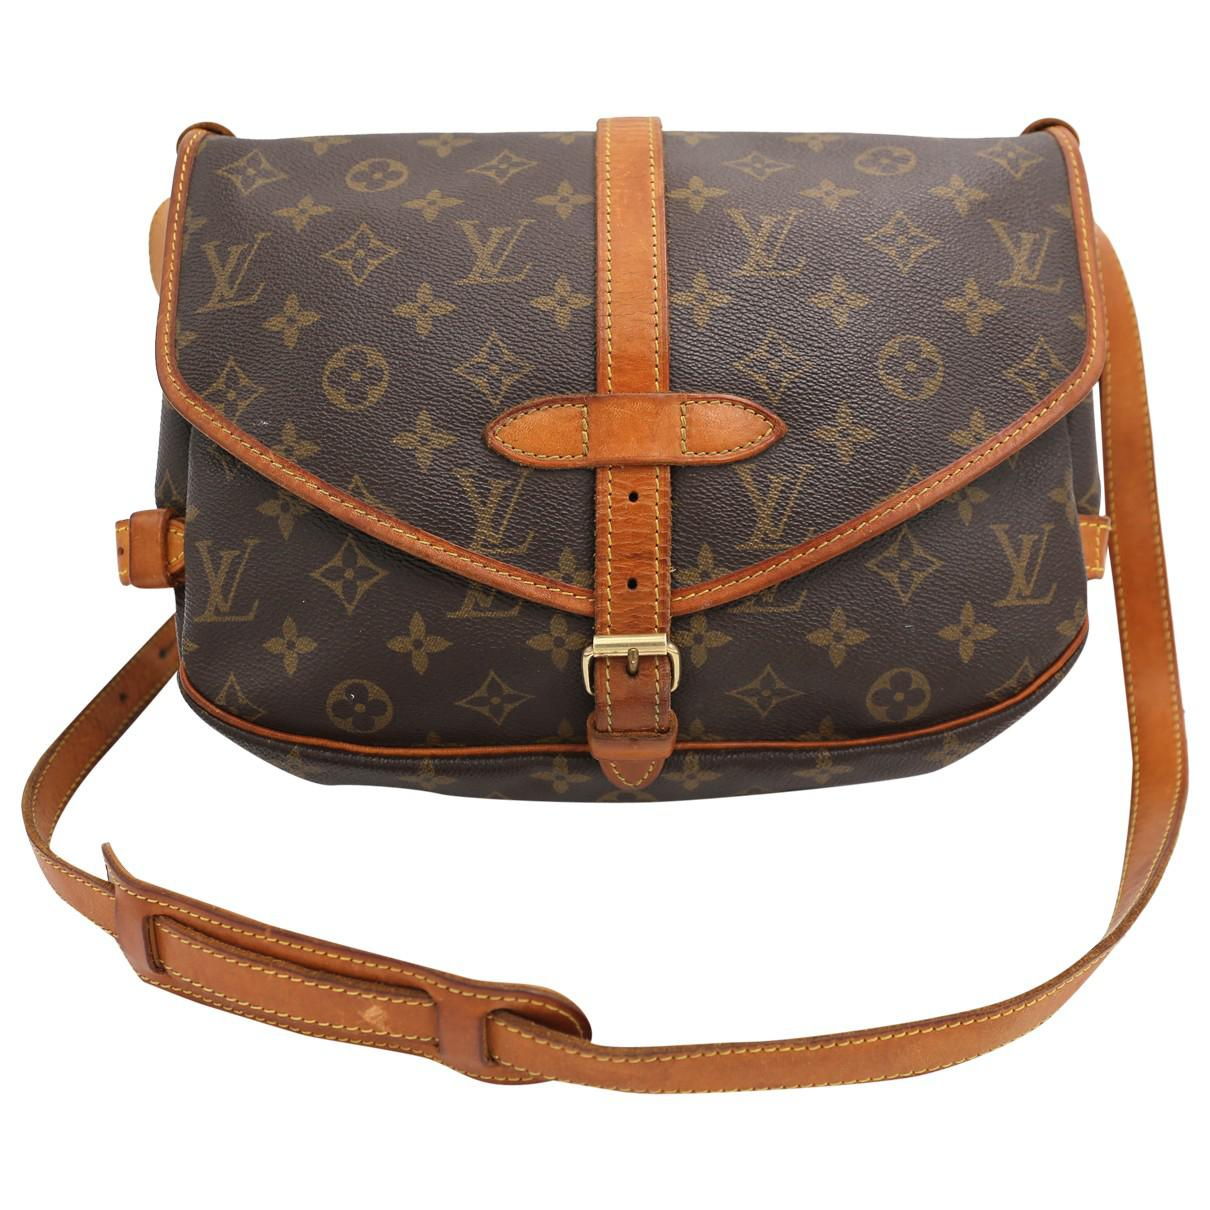 bfabe731e3b4 Lyst - Louis Vuitton Saumur Cloth Crossbody Bag in Brown